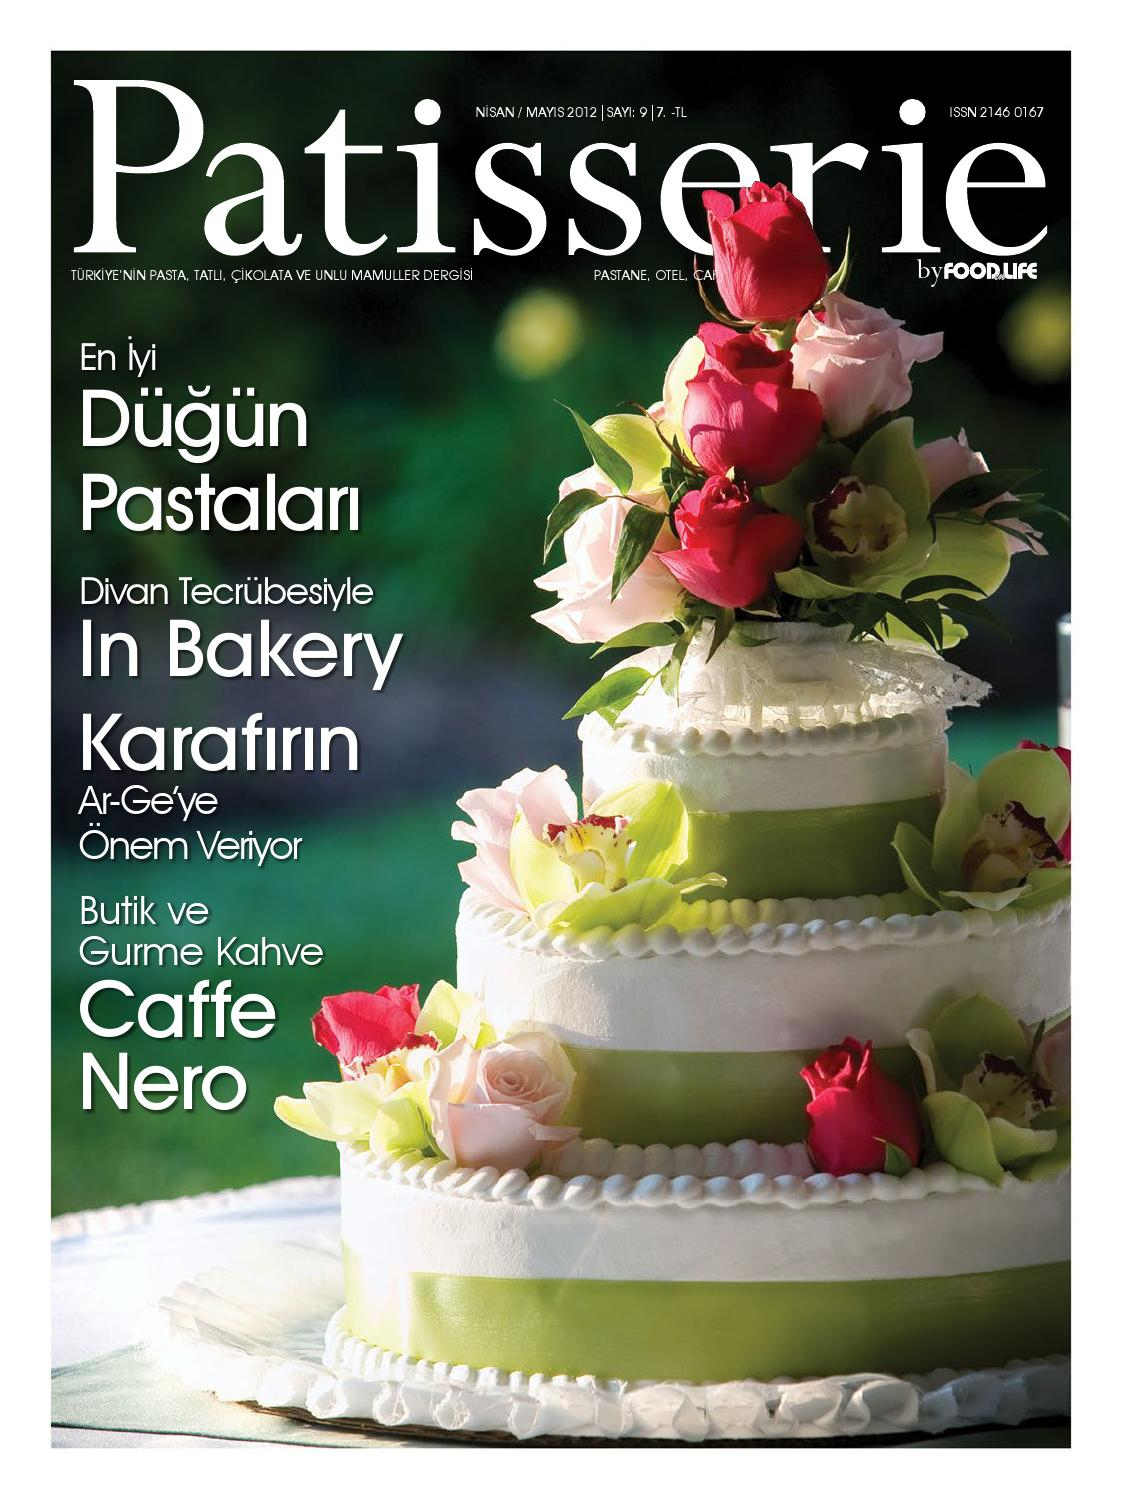 Patisserie By Food In Life 09 By Venomaer - Issuu pour Pralin Jardin